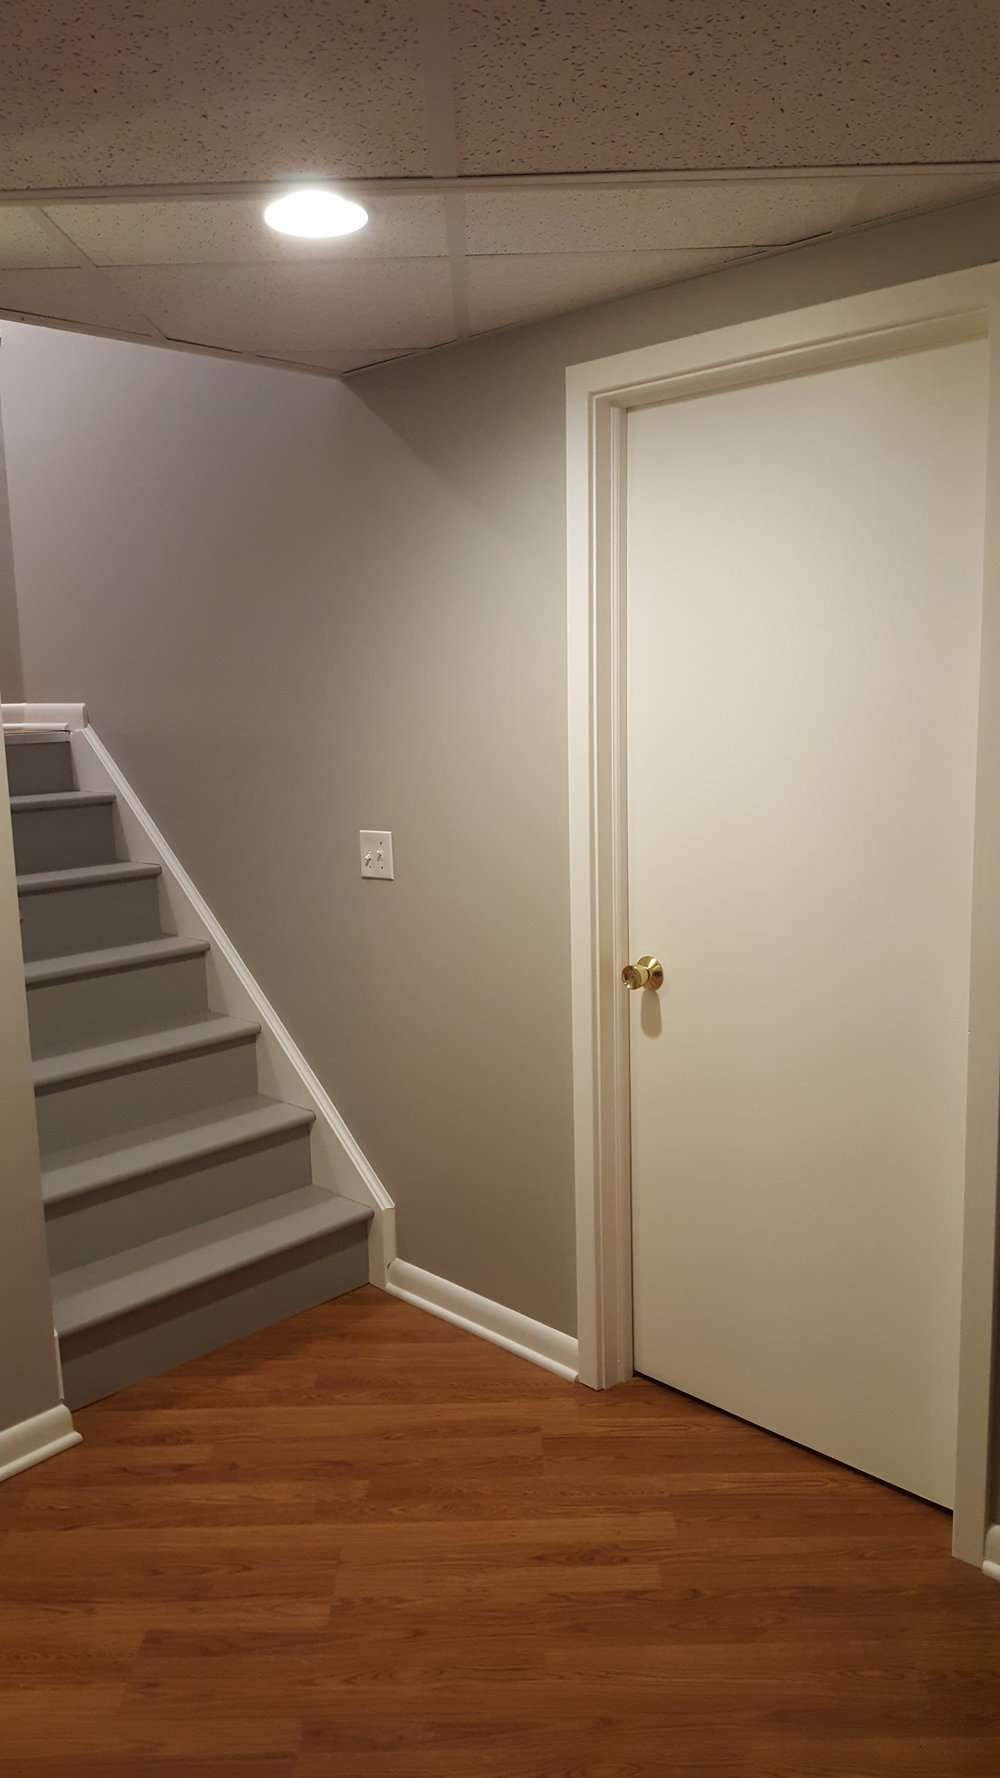 """"""" Great people, very communicative. Competitive prices and great service!  Josh's attention to detail on the painting work itself is the best I've  seen. We plan to hire Stamp Paints again. """"   -Kate M."""